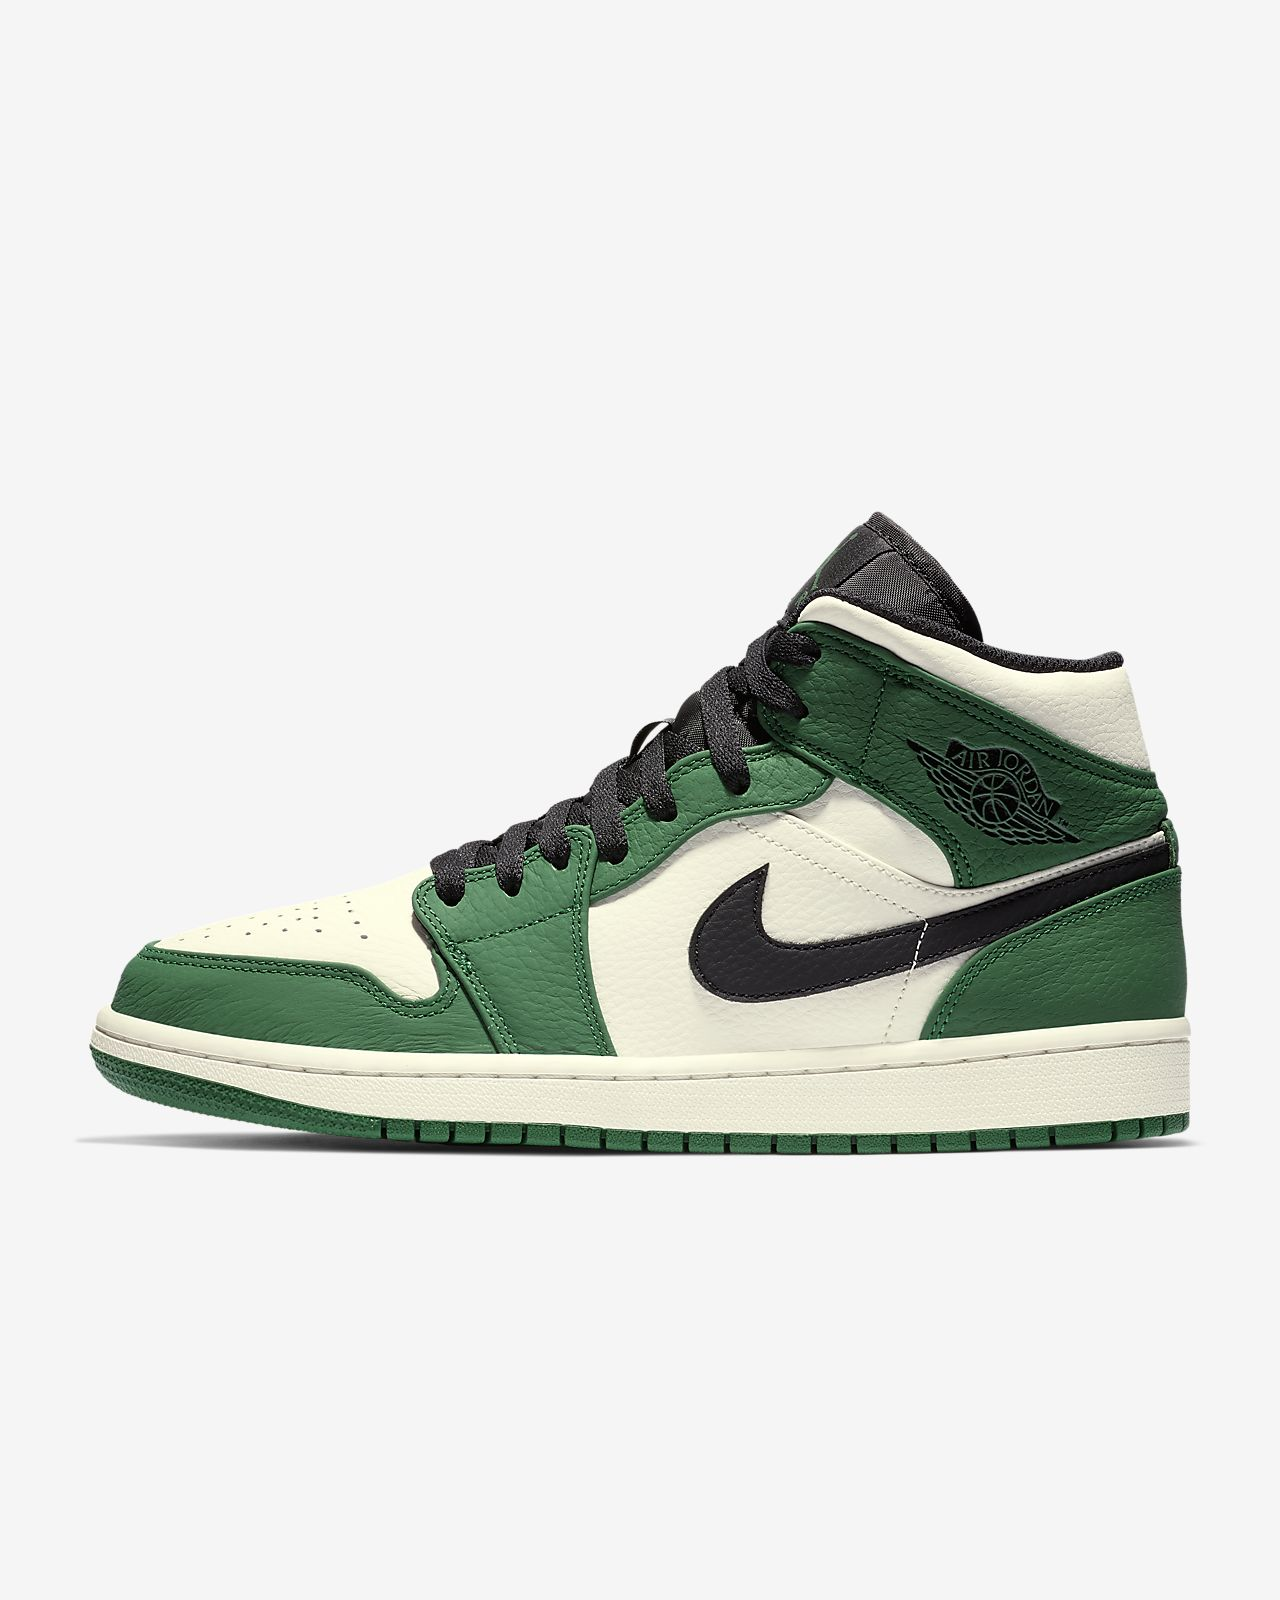 san francisco bc848 7367c ... Air Jordan 1 Mid SE Men s Shoe